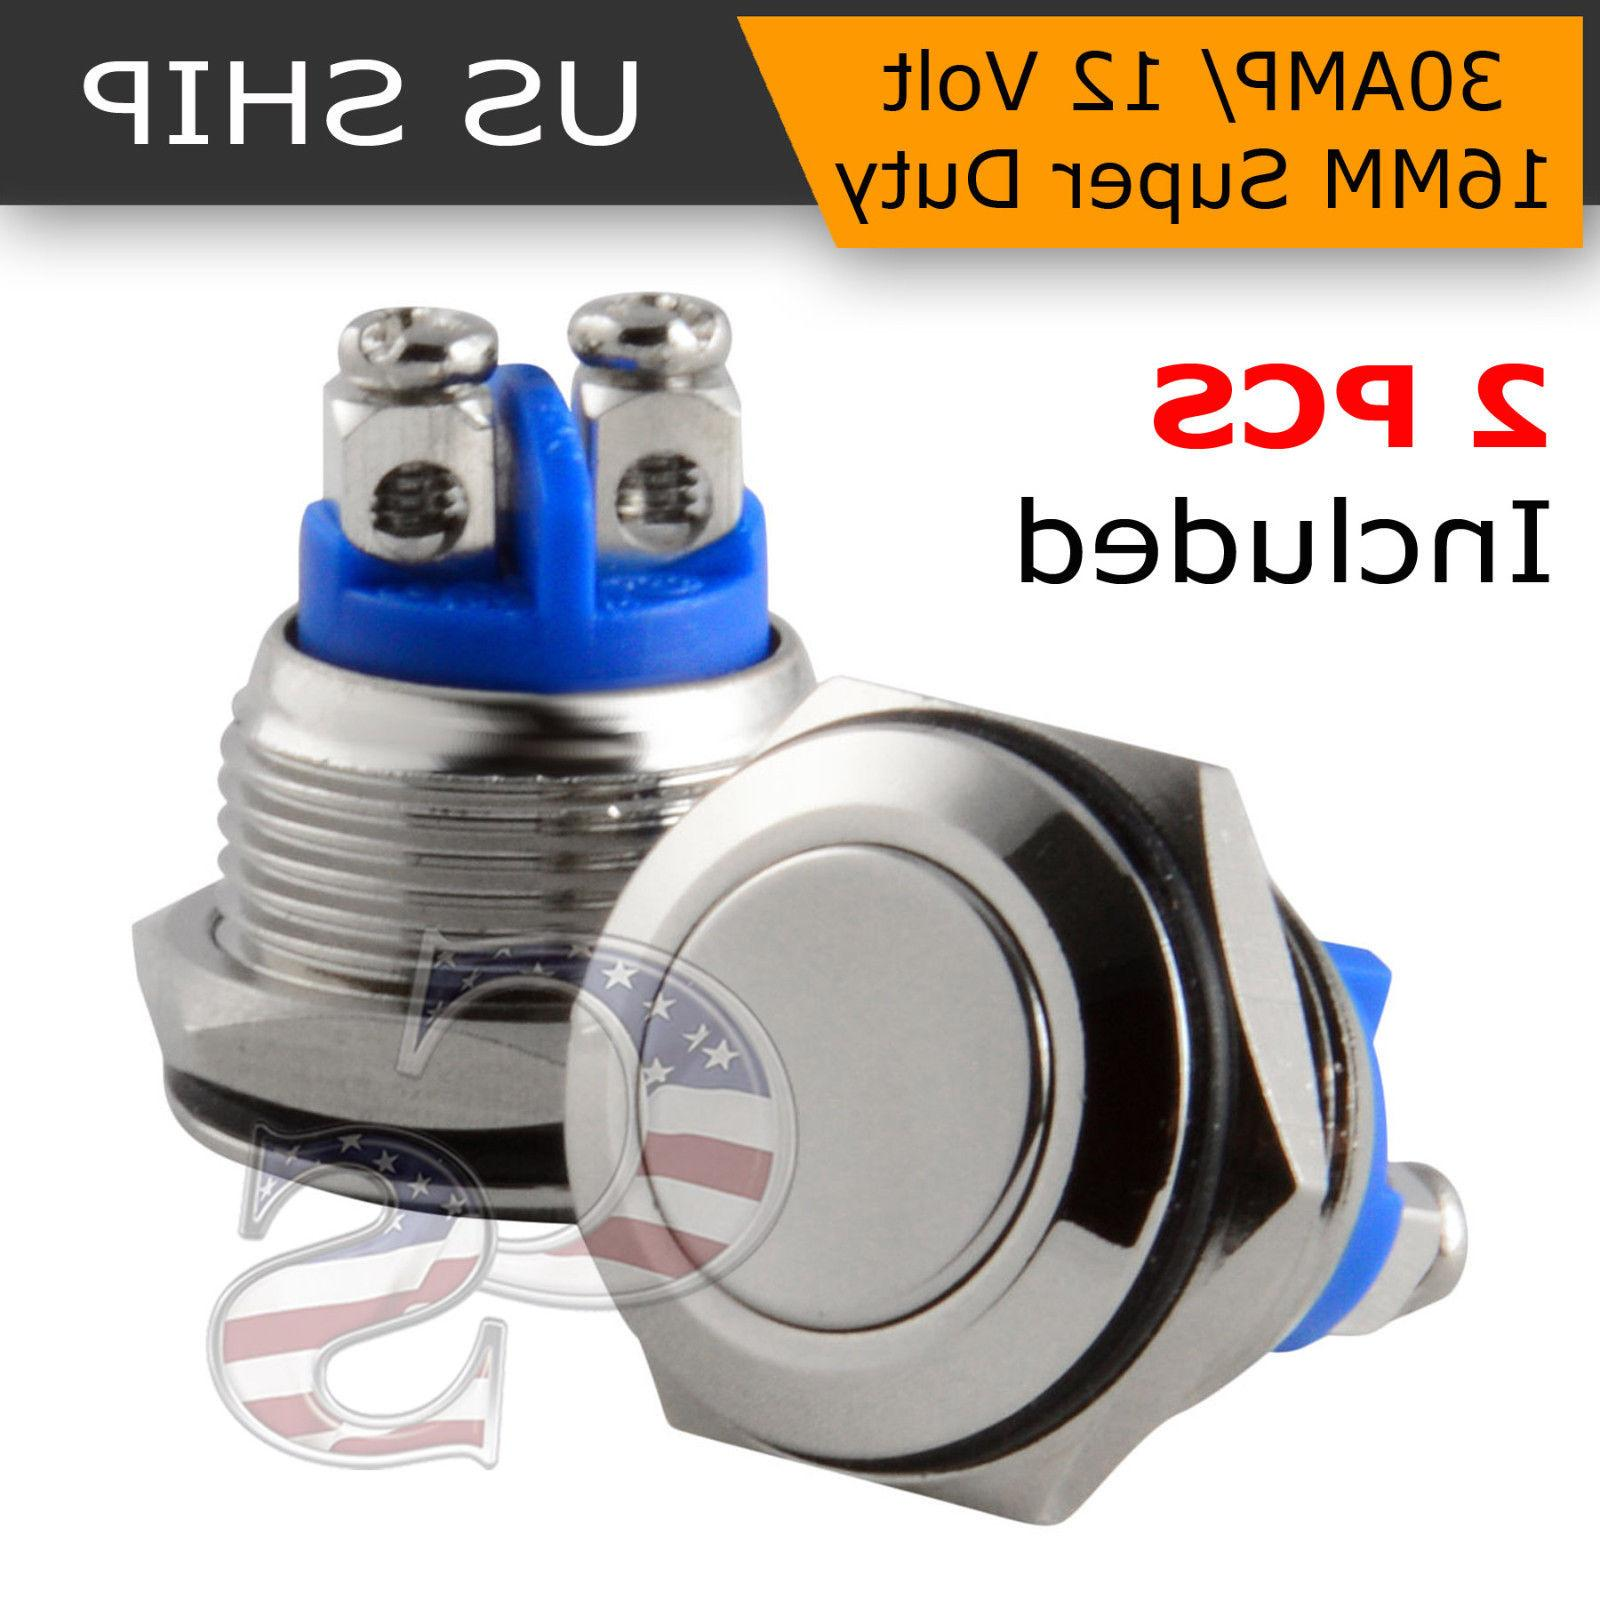 30 amp metal momentary waterproof switch 12v16mm